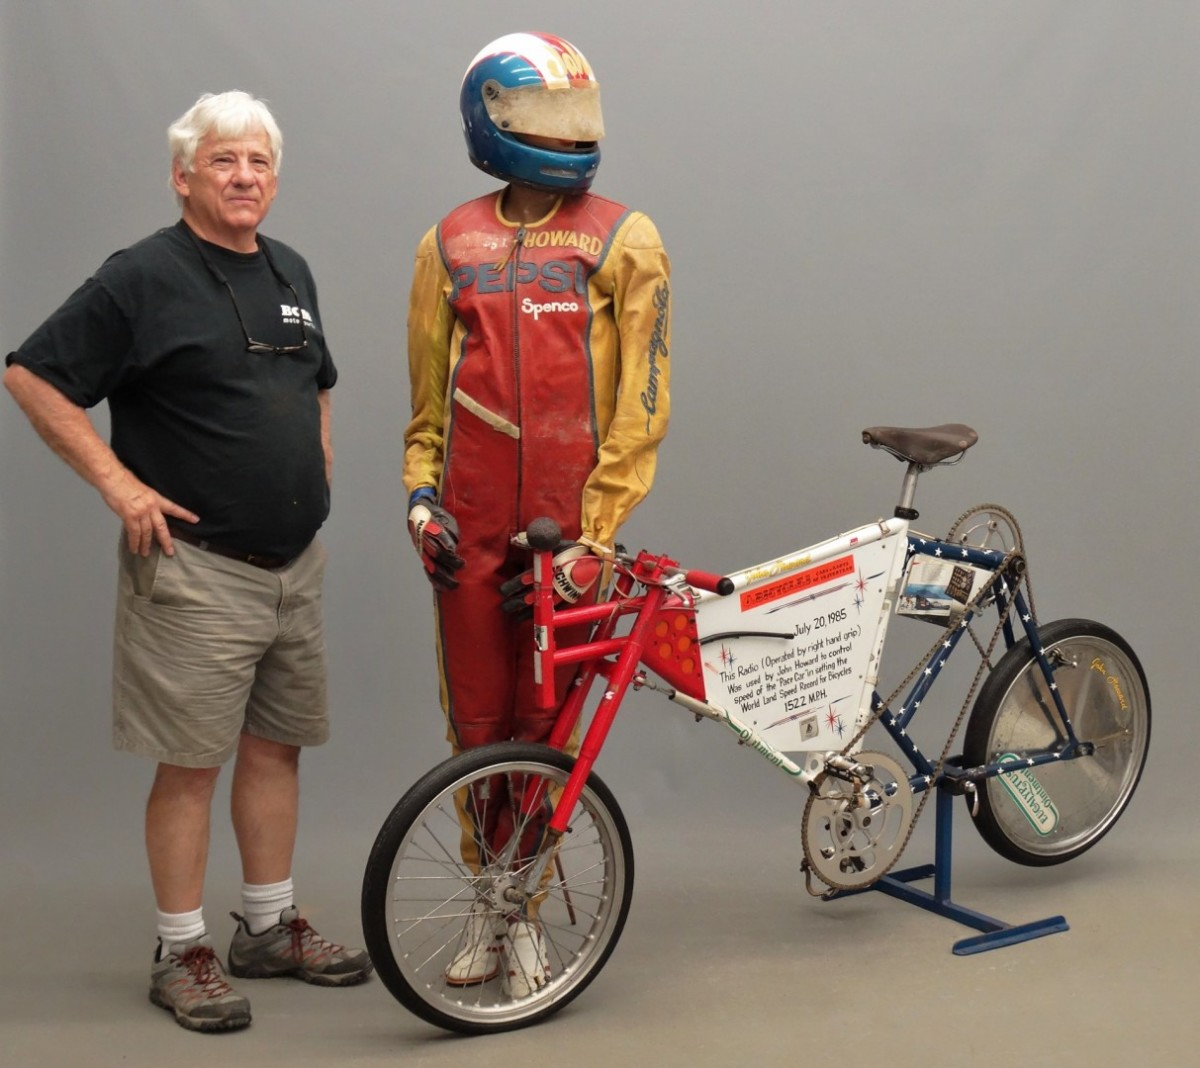 Fallon with the land speed record bicycle, $11,700.